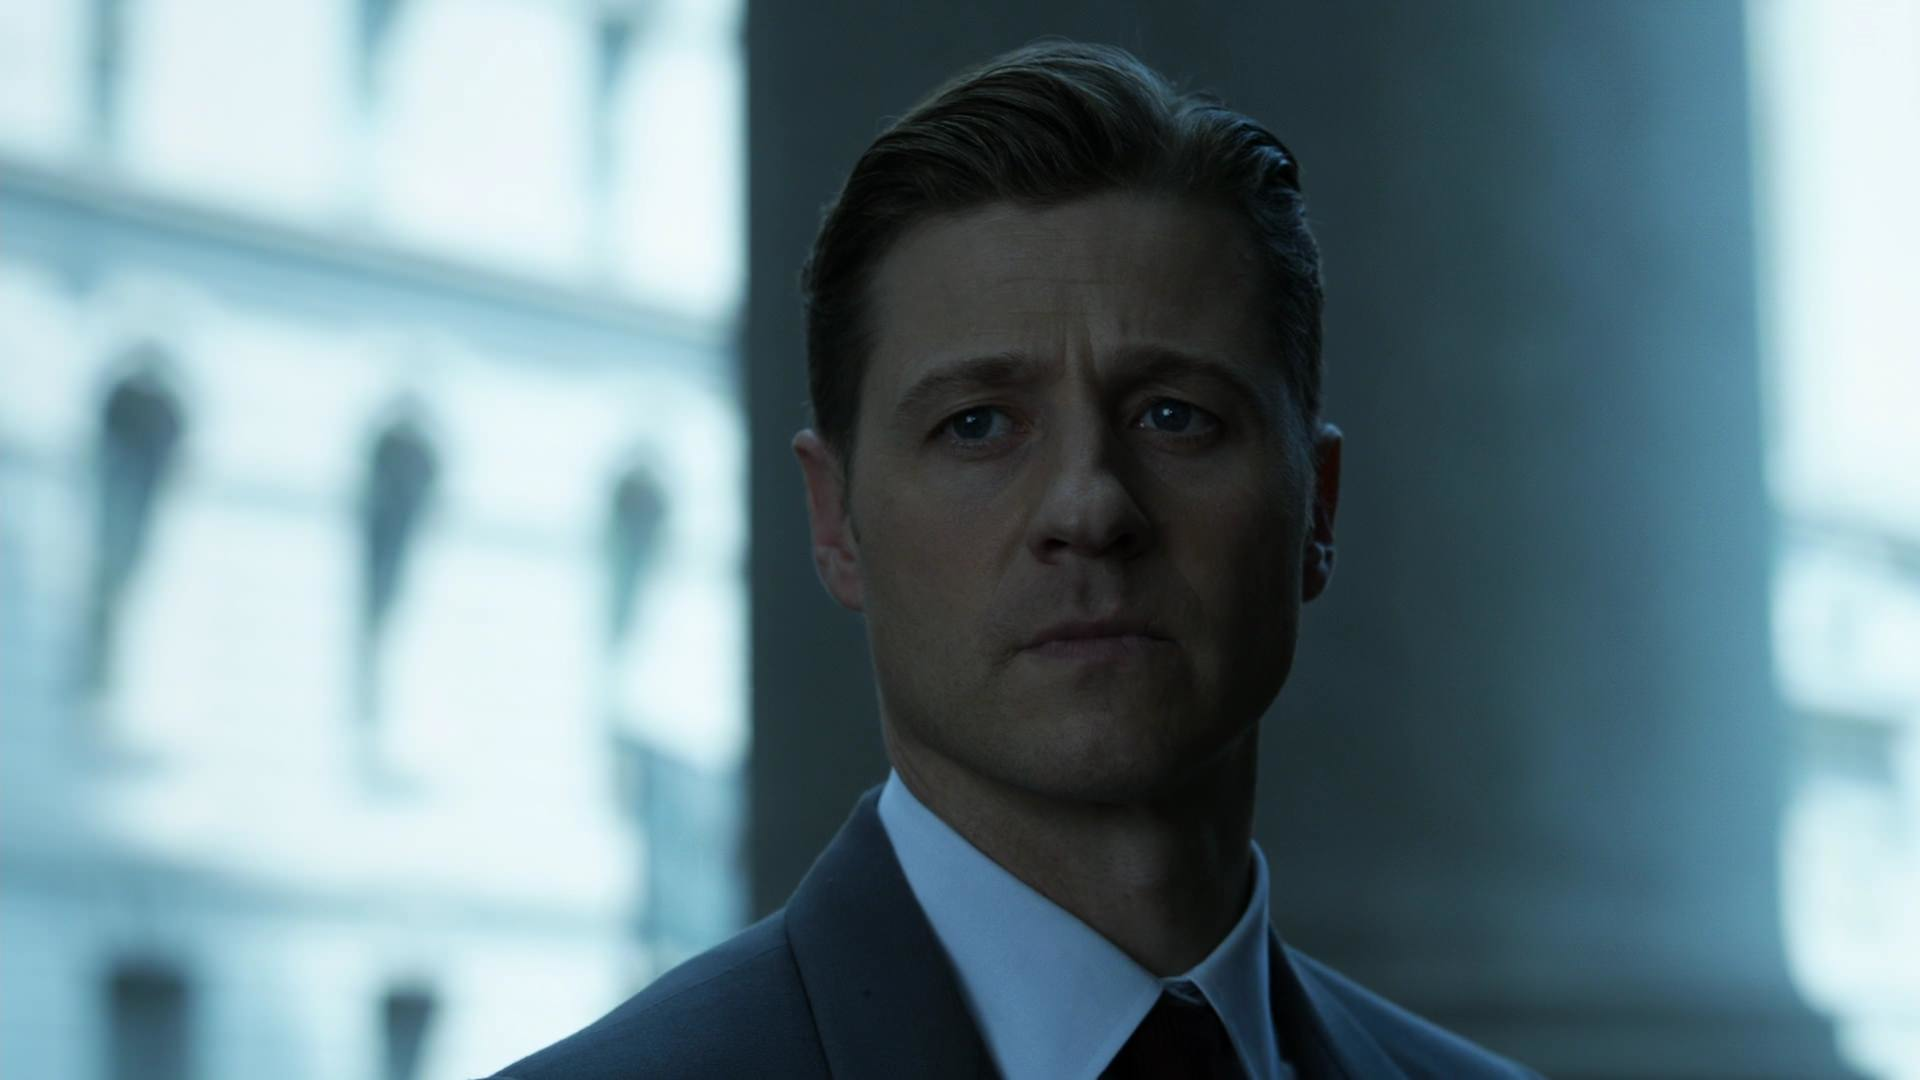 Ben McKenzie as Jim Gordon in 'Gotham'